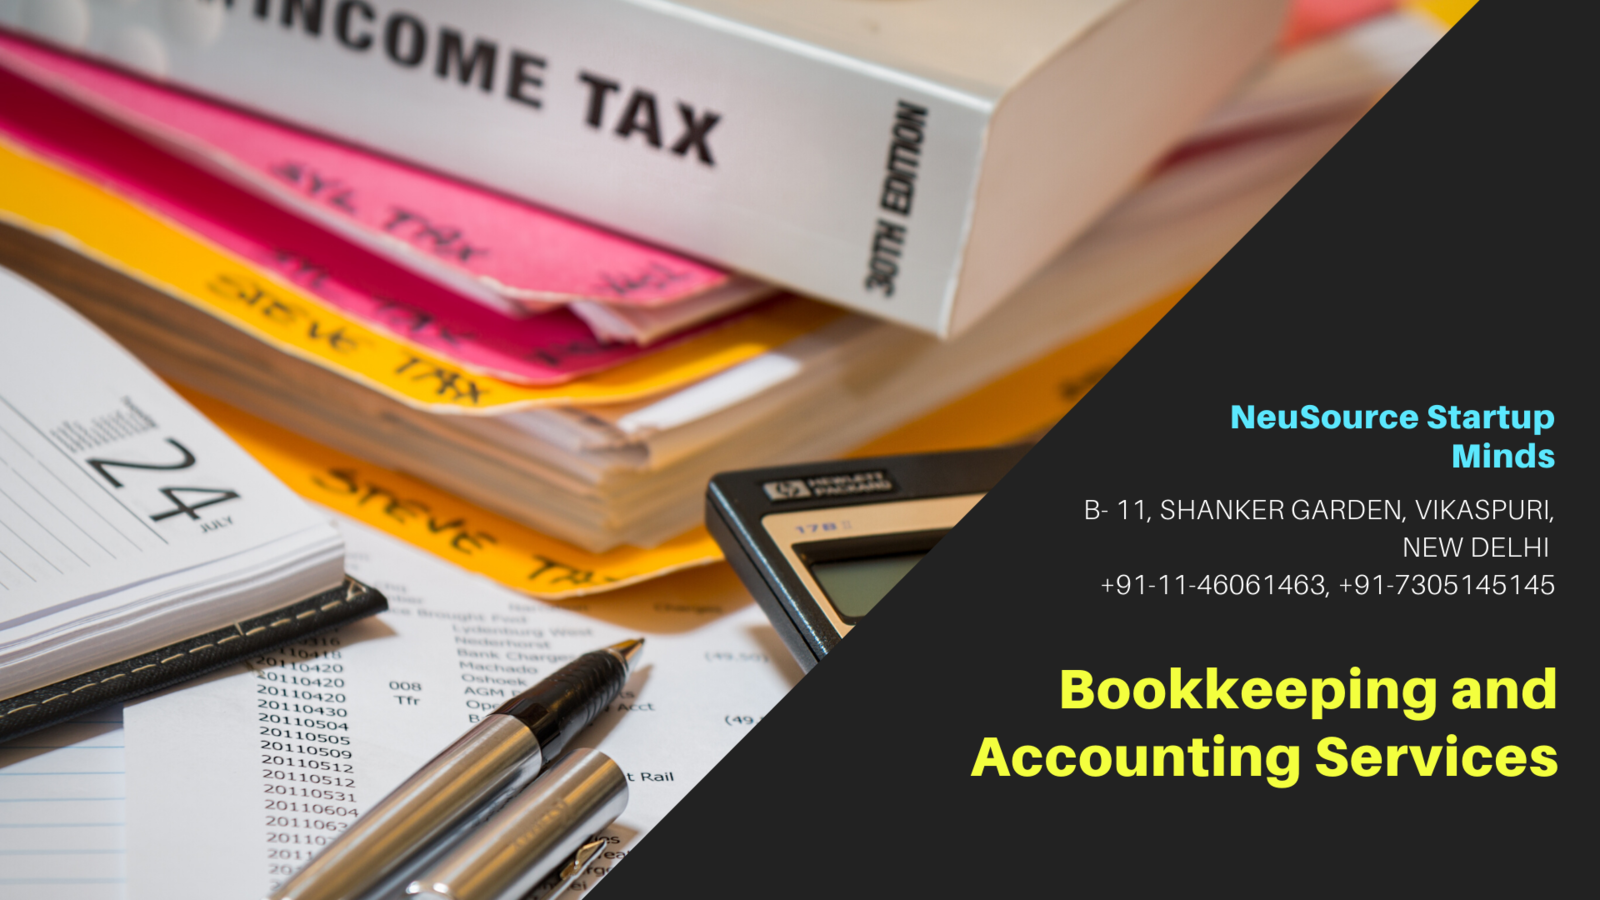 Key Benefits of Outsourcing Bookkeeping and Accounting